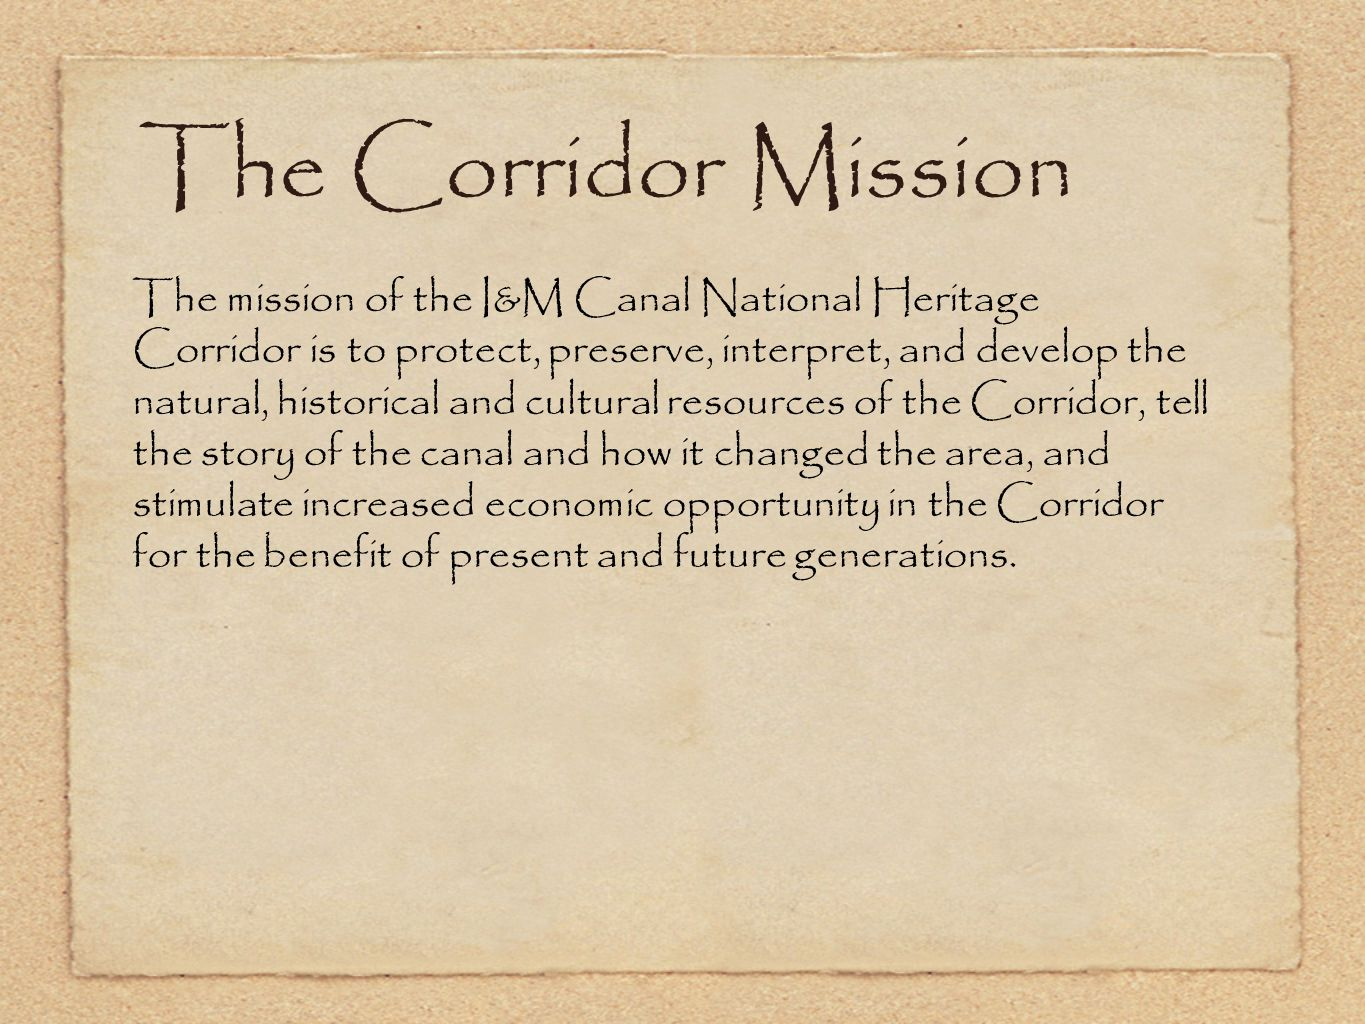 The Corridor Mission The mission of the I&M Canal National Heritage Corridor is to protect, preserve, interpret, and develop the natural, historical and cultural resources of the Corridor, tell the story of the canal and how it changed the area, and stimulate increased economic opportunity in the Corridor for the benefit of present and future generations.